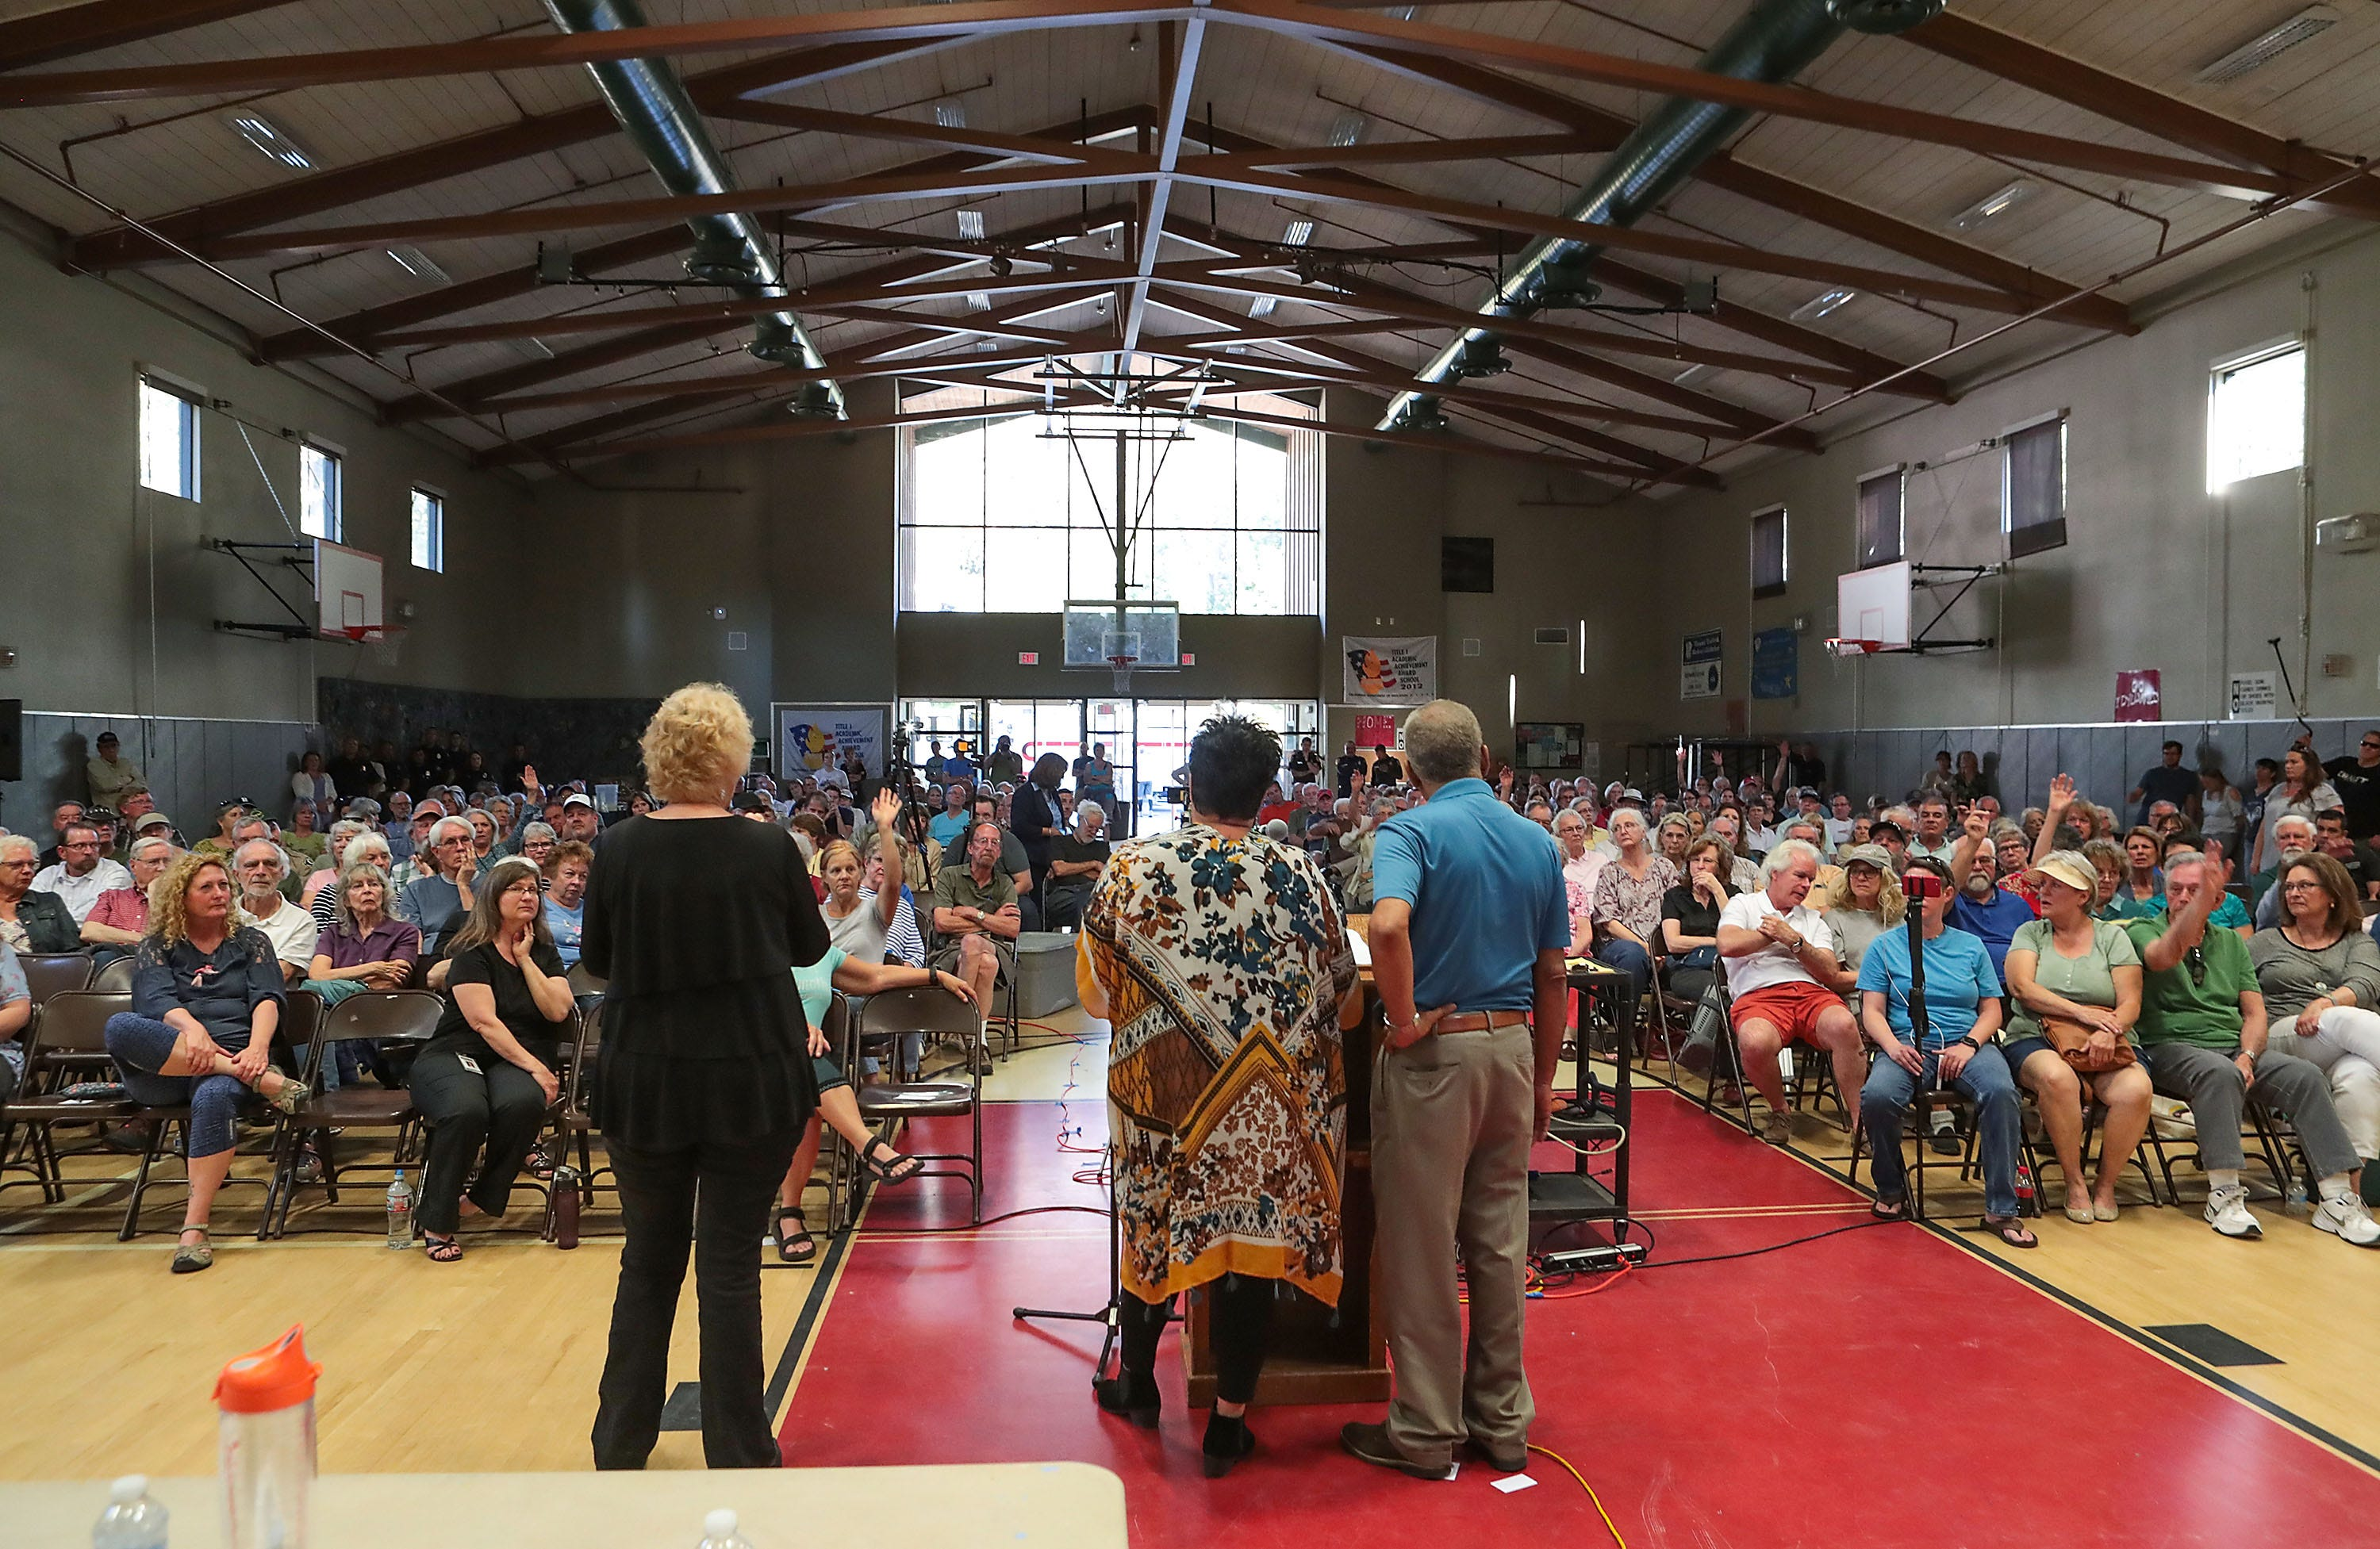 Residents of Idyllwild, Calif., and nearby mountain communities gather for a meeting about the progress of the reconstruction of Highway 243 at the Idyllwild School in June 2019. Portions of the road were destroyed by heavy rainfall earlier this year.